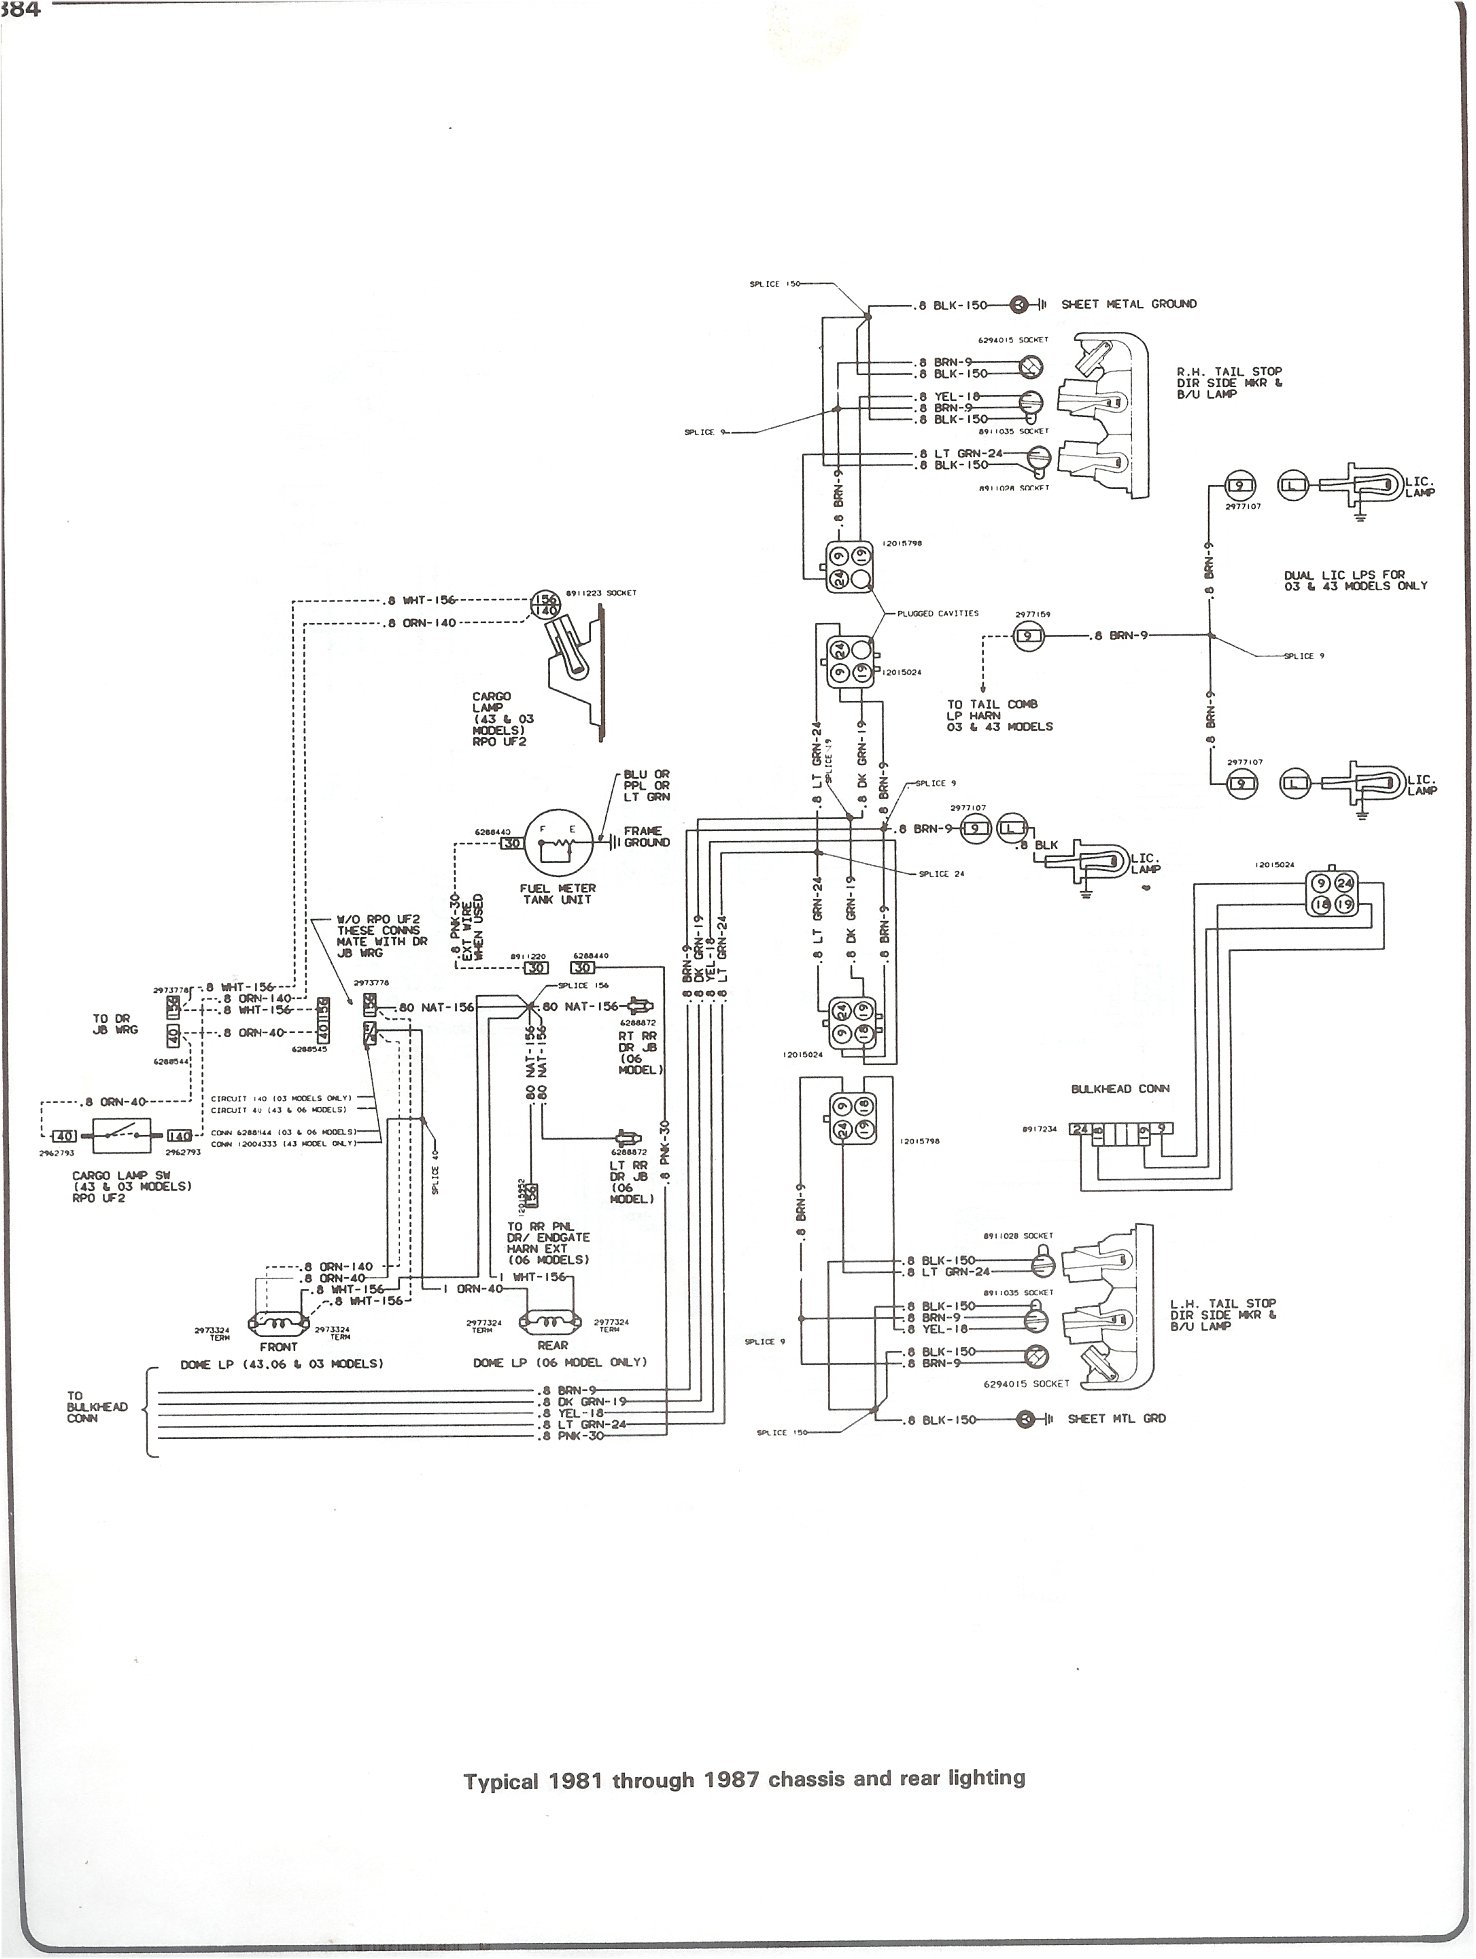 [DIAGRAM_1CA]  Complete 73-87 Wiring Diagrams | Light Switch Wiring Diagram 1981 C10 |  | 73-87 Chevy Trucks